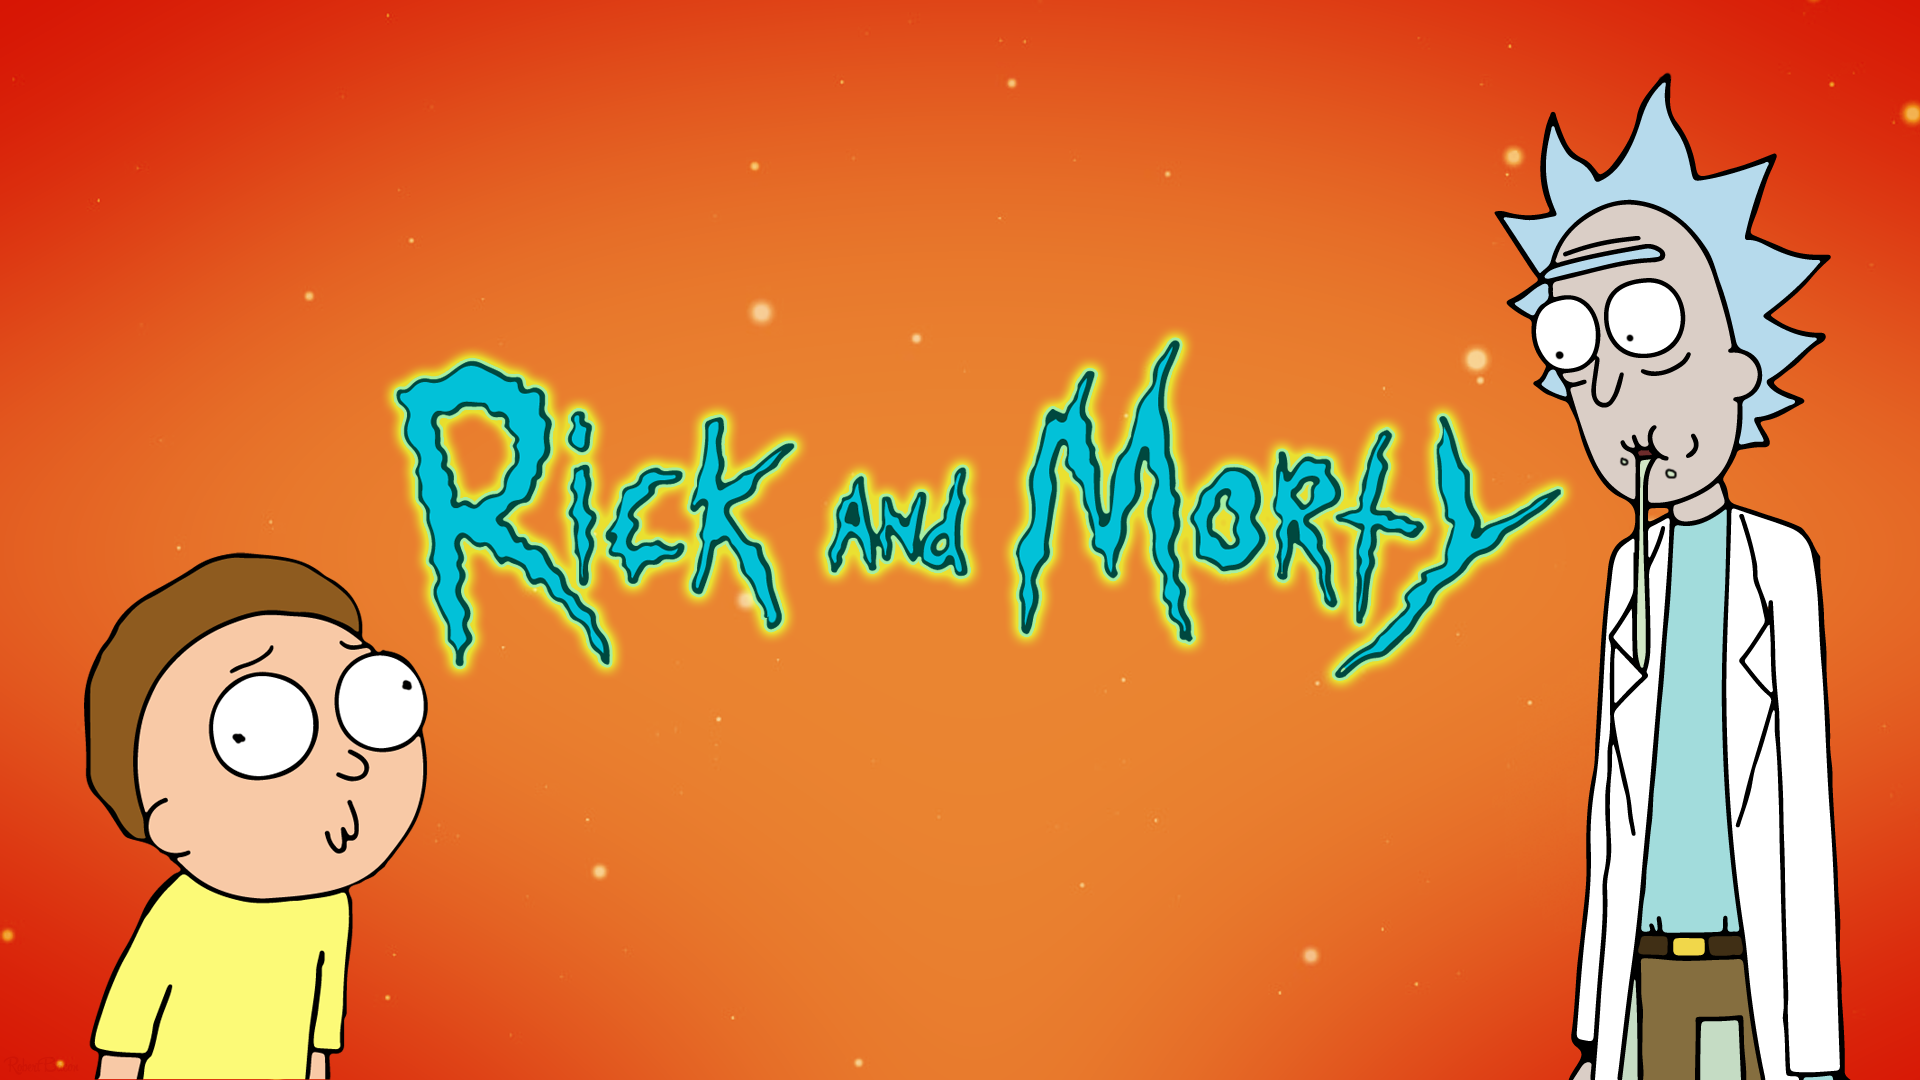 Rick And Morty Wallpapers 1920x1080 Rick Morty Poster Rick